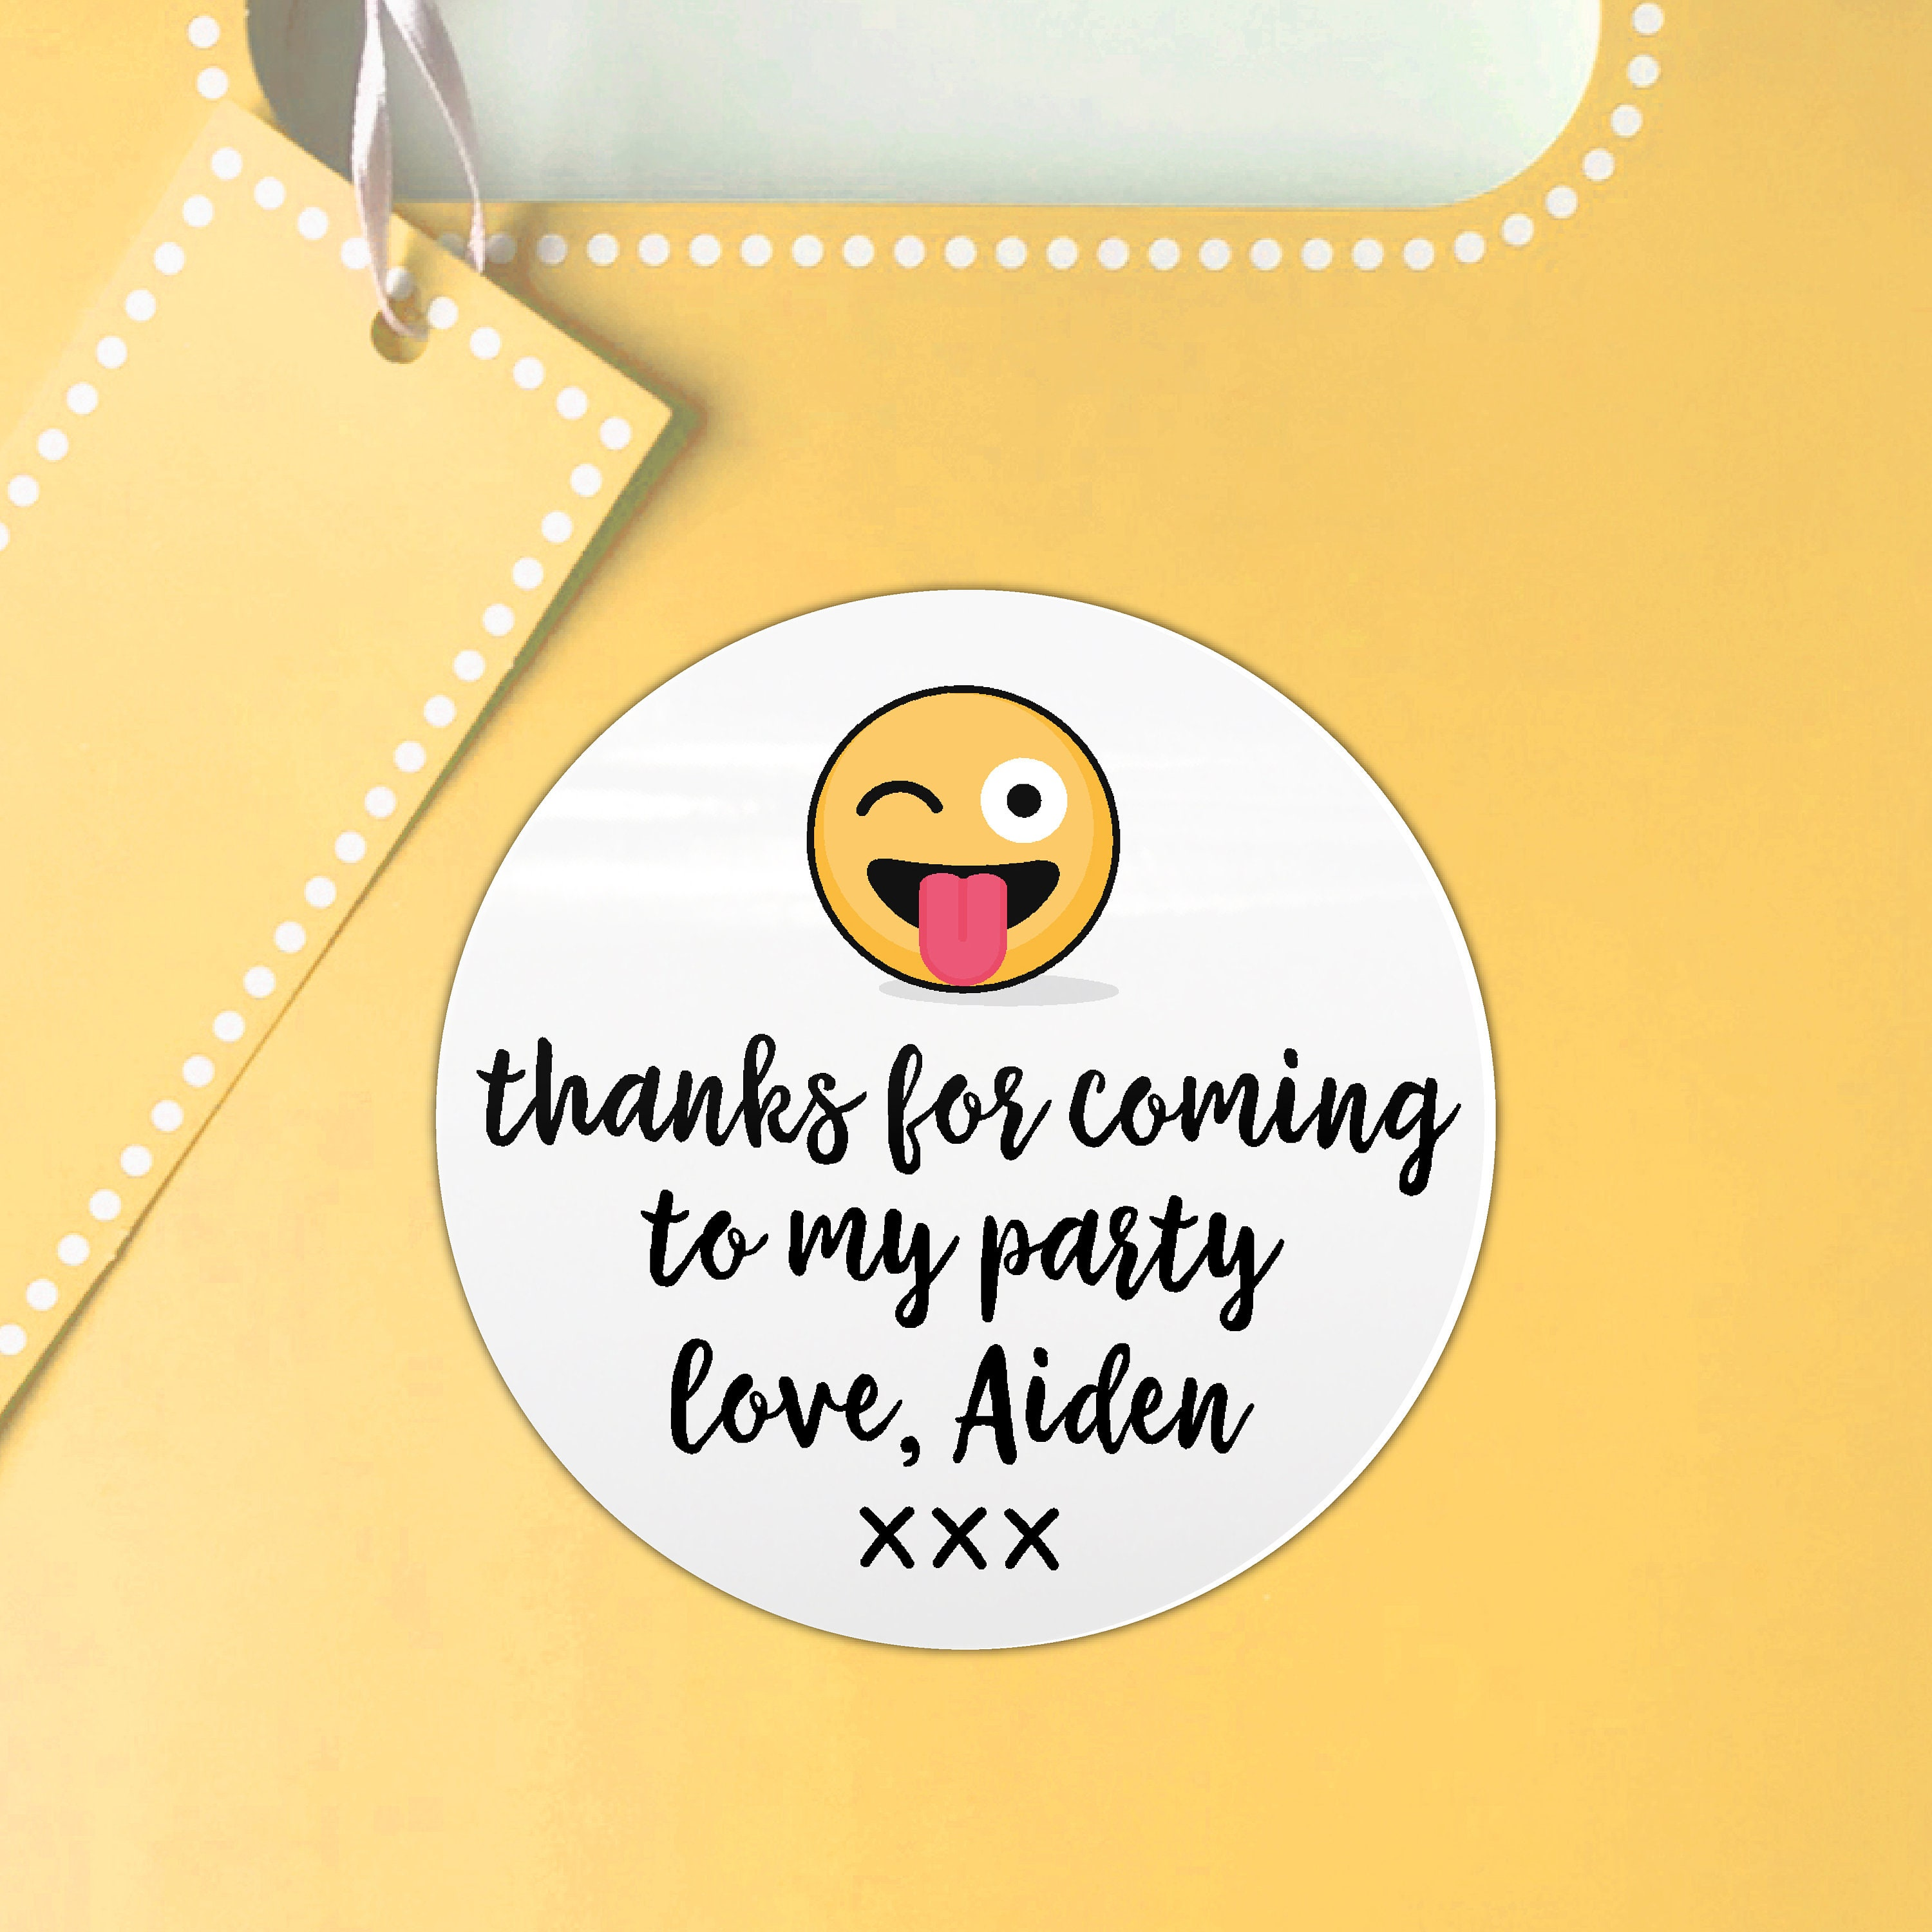 Emoji birthday party favor stickers kid party favor happy birthday party favor sticker custom birthday sticker round gift sticker